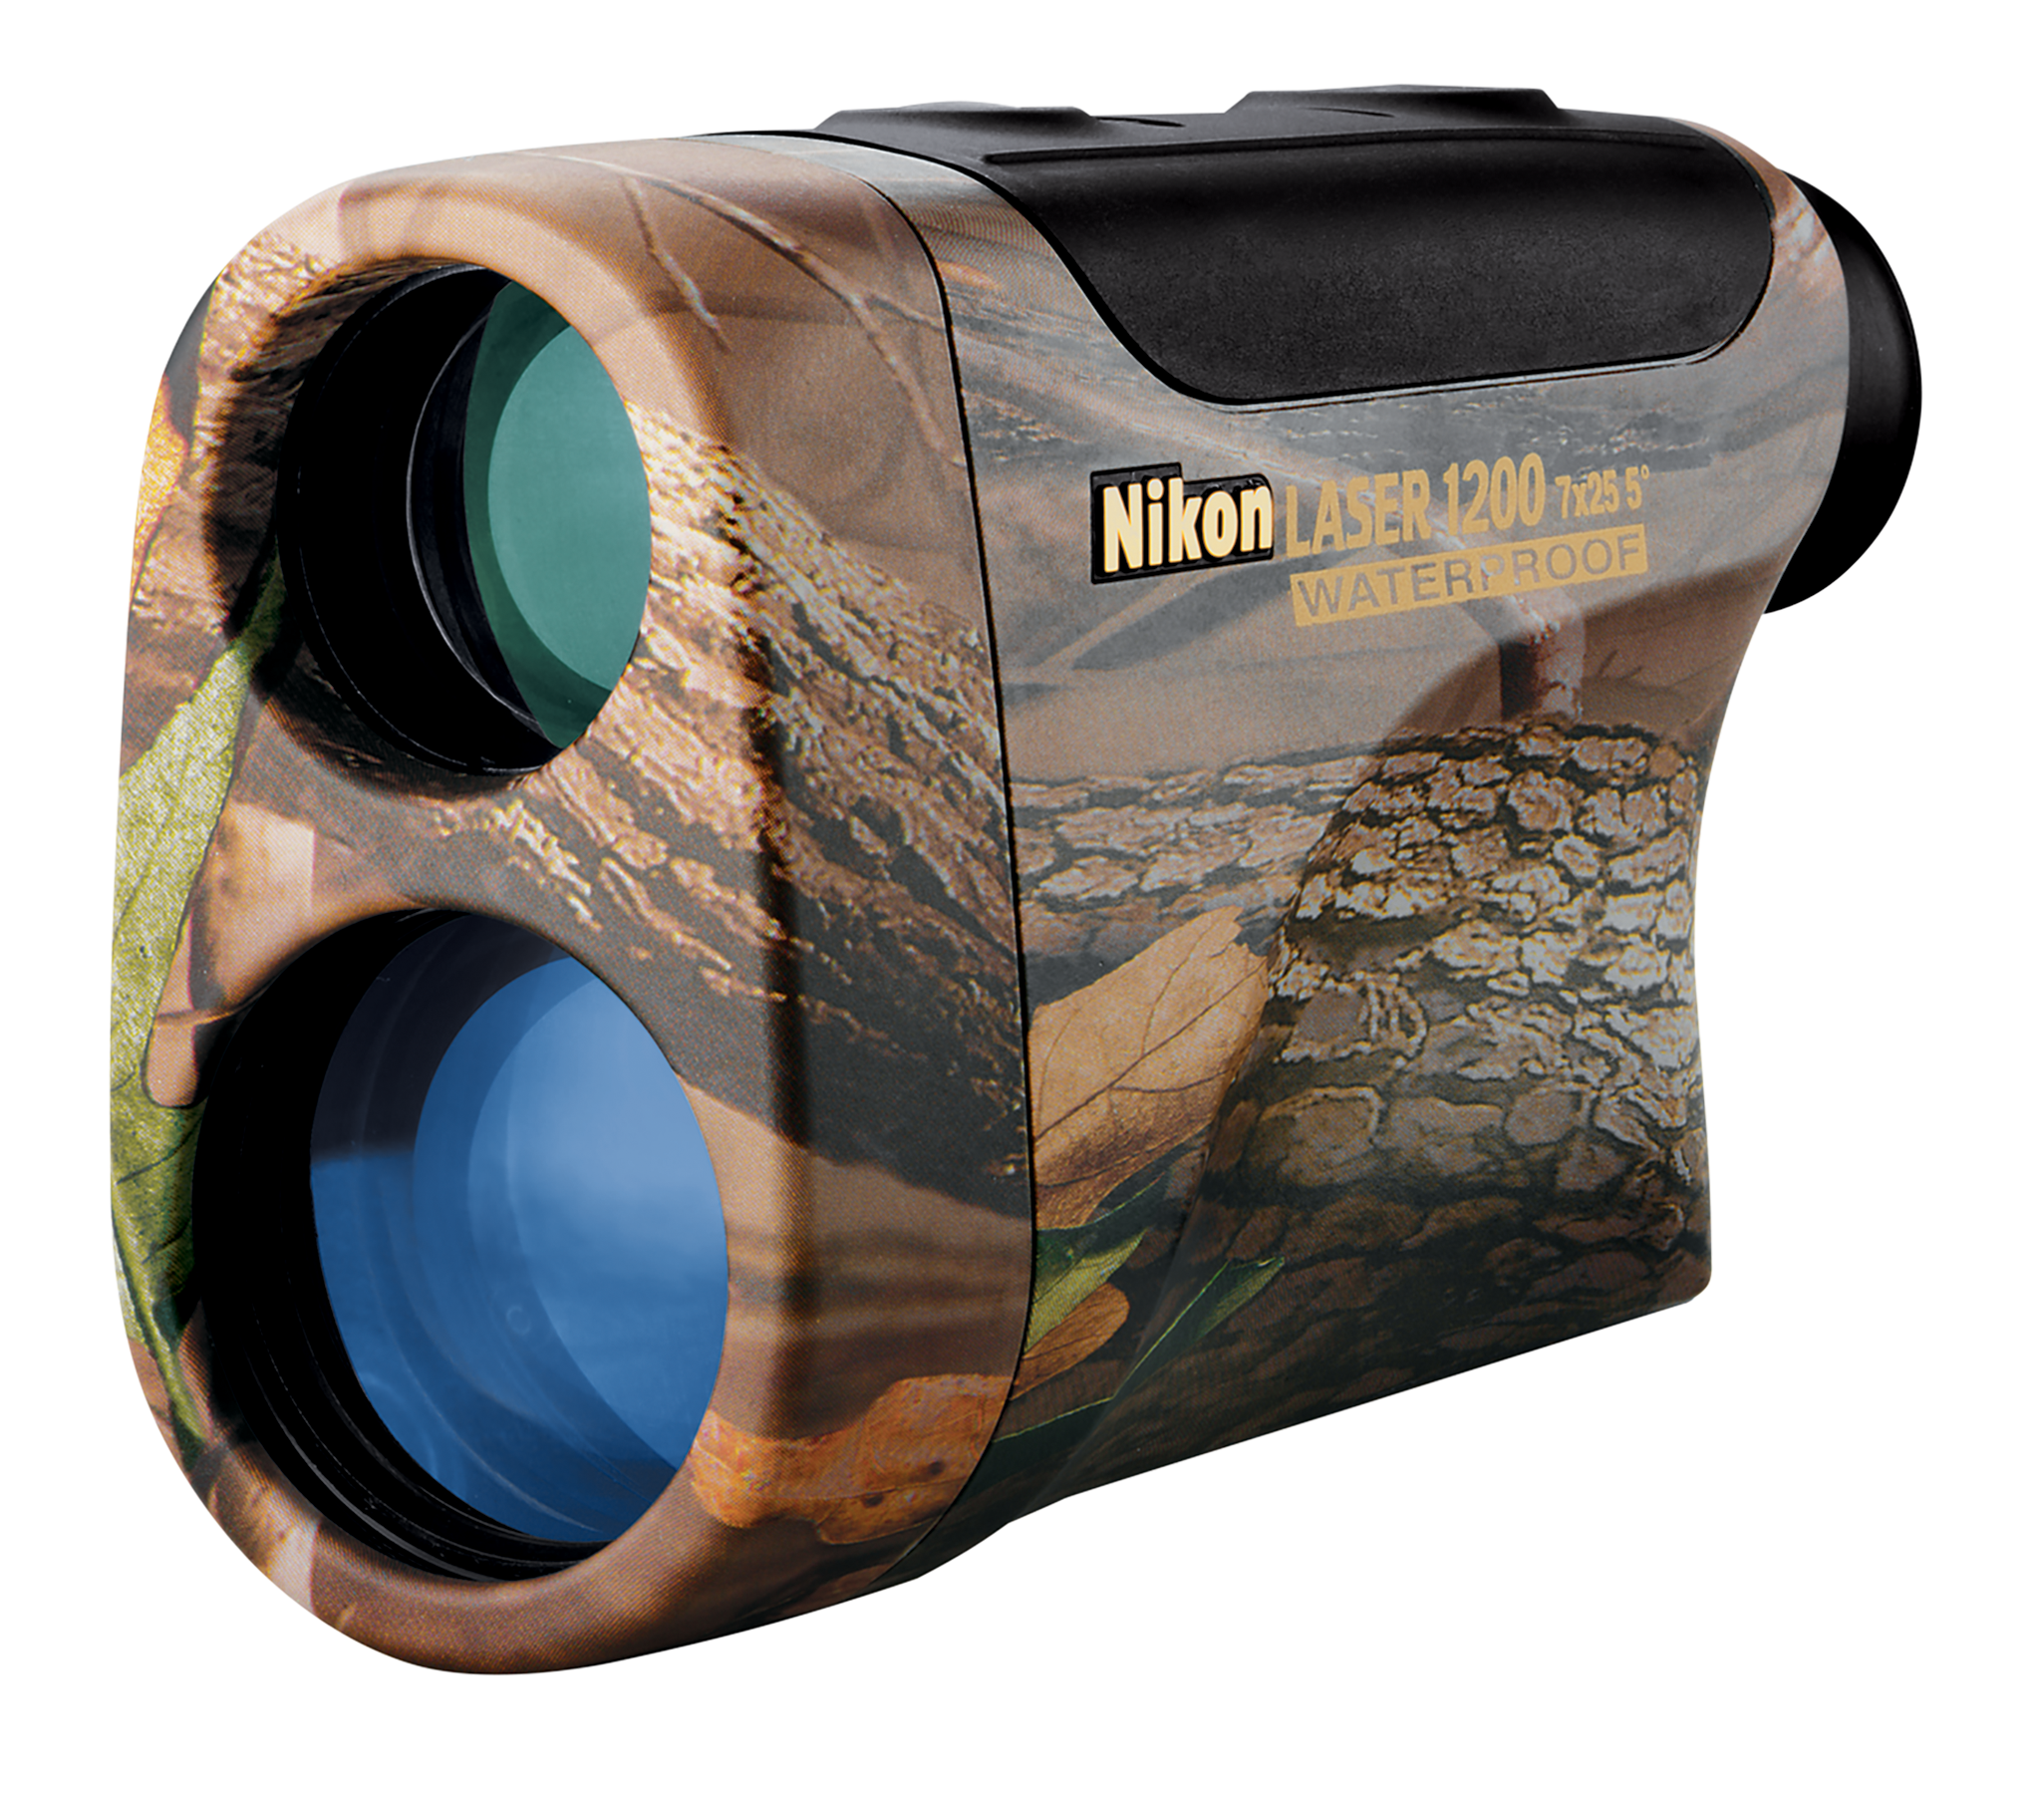 Nikon 8359 Monarch Gold 1200 7x25mm FOV 18.6mm Eye Relief Realtree Hardwoods Grn